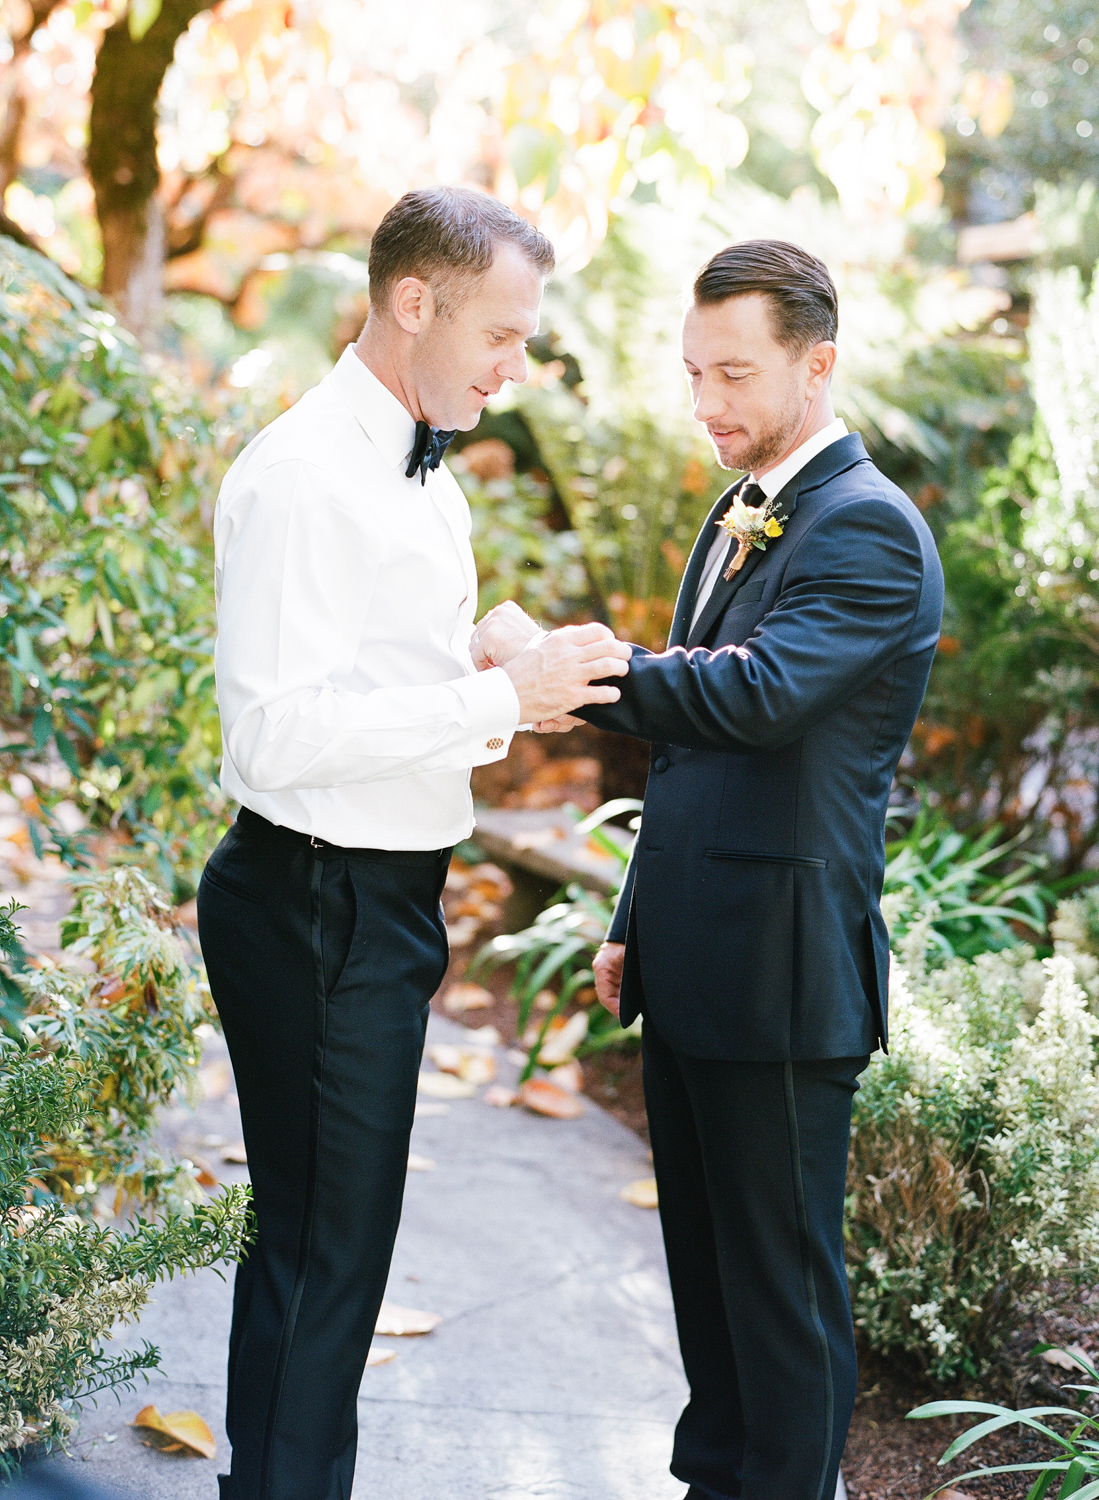 Grooms putting on their cufflinks before their wedding ceremony in St. Helena, California; Sylvie Gil Photography